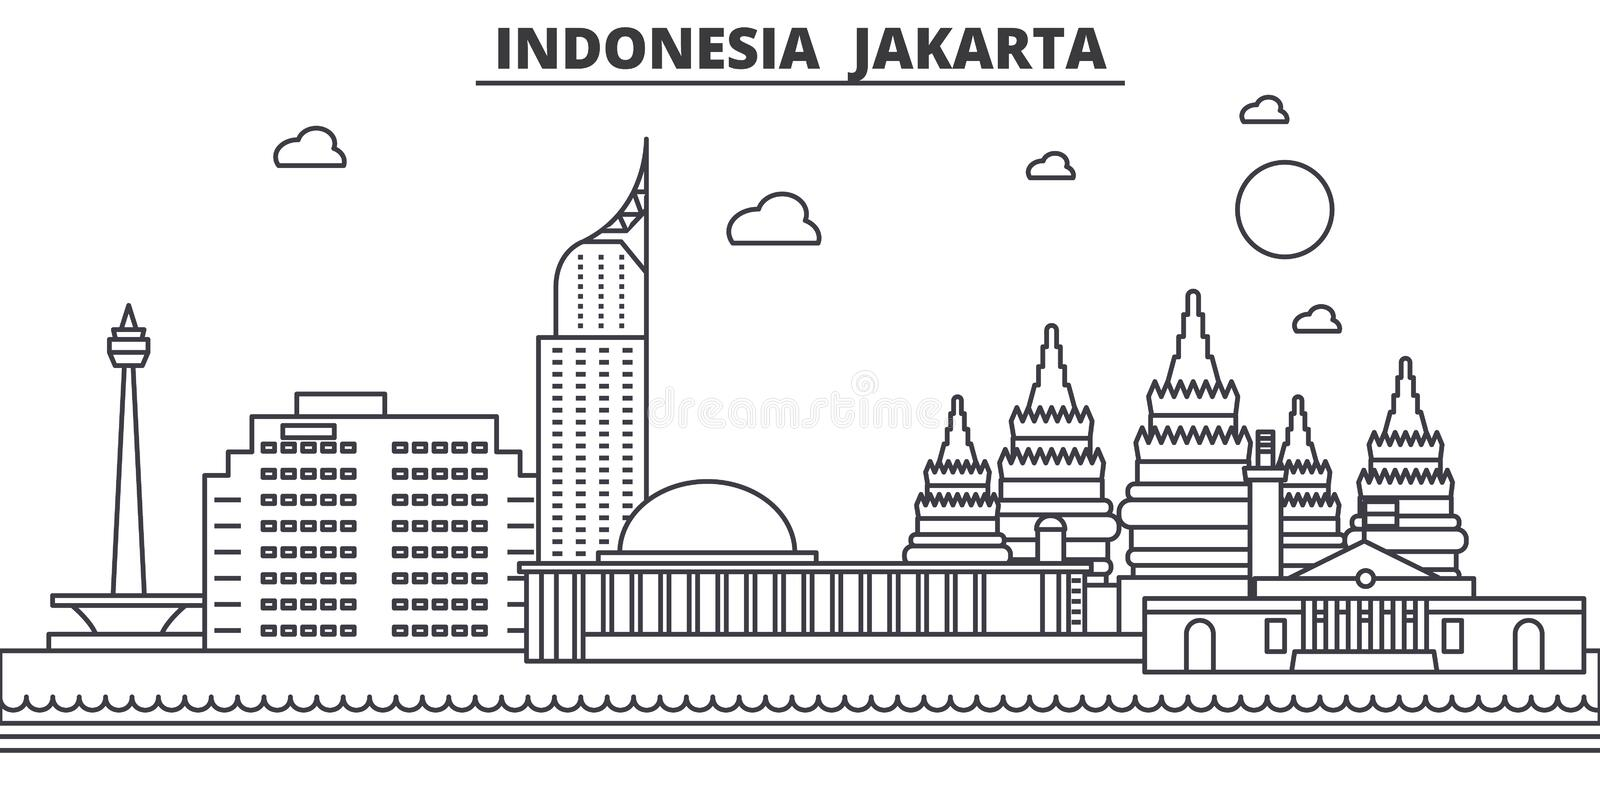 Indonesia, Jakarta architecture line skyline illustration. Linear vector cityscape with famous landmarks, city sights royalty free illustration